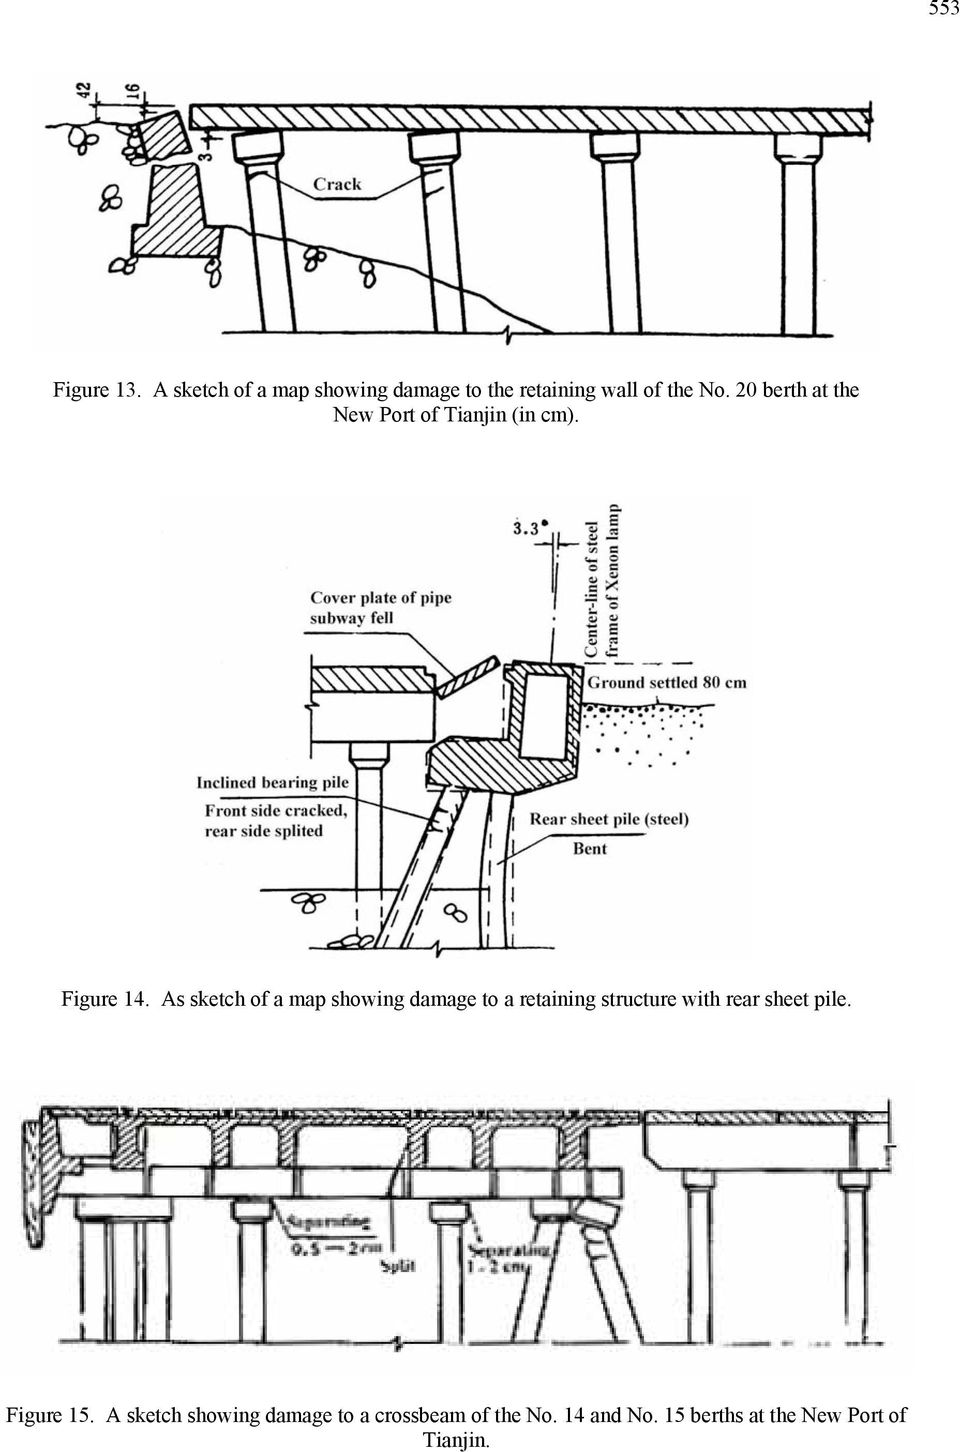 As sketch of a map showing damage to a retaining structure with rear sheet pile.